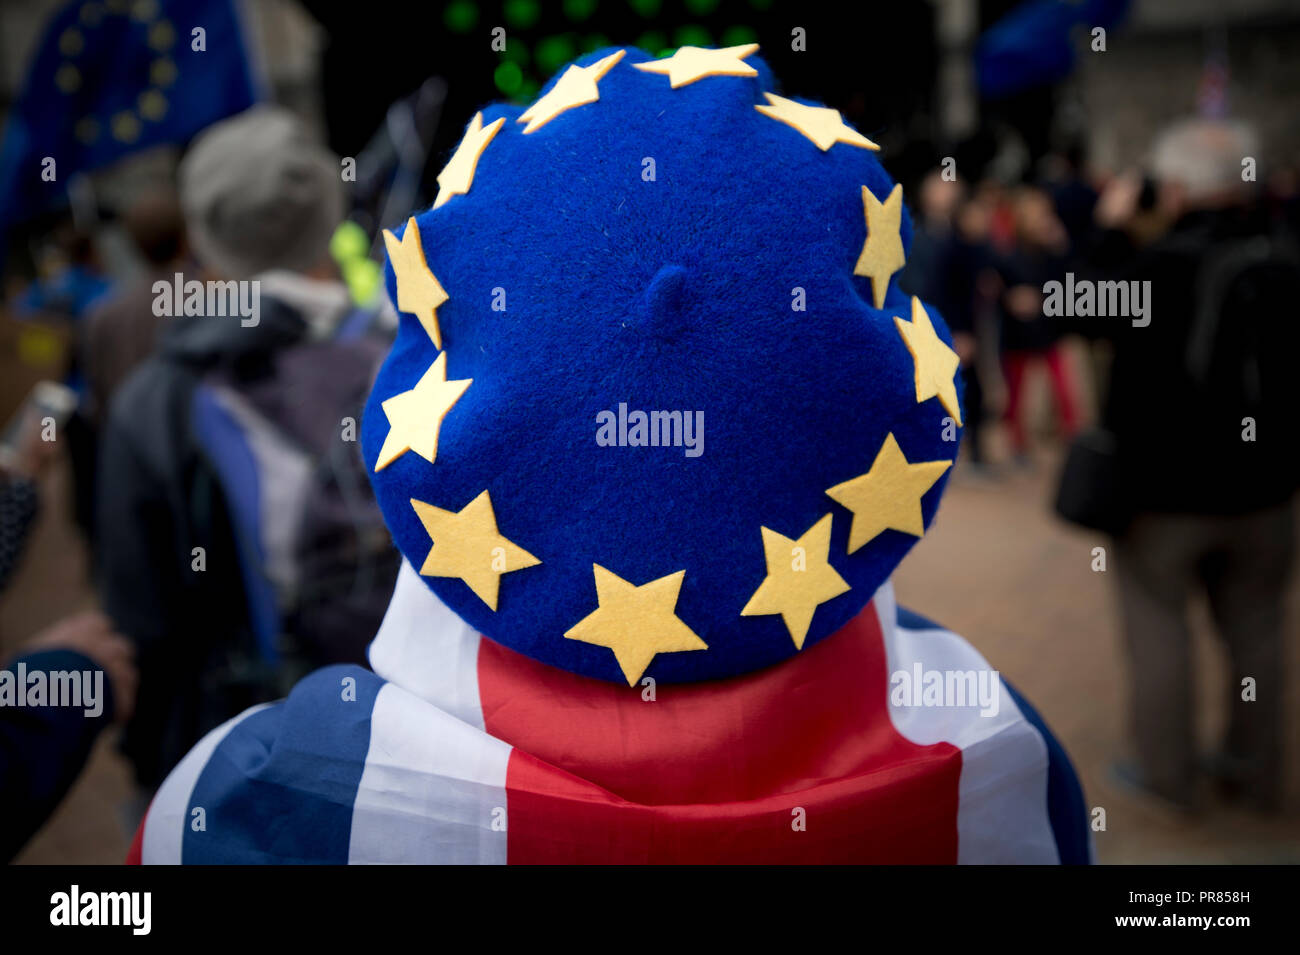 Birmingham, UK. 30th September 2018. An attendee wears a beret hat based on the flag of the European Union at an anti-Brexit rally in Birmingham's Victoria Square near to the Conservative Party Conference in Birmingham. © Russell Hart/Alamy Live News. - Stock Image